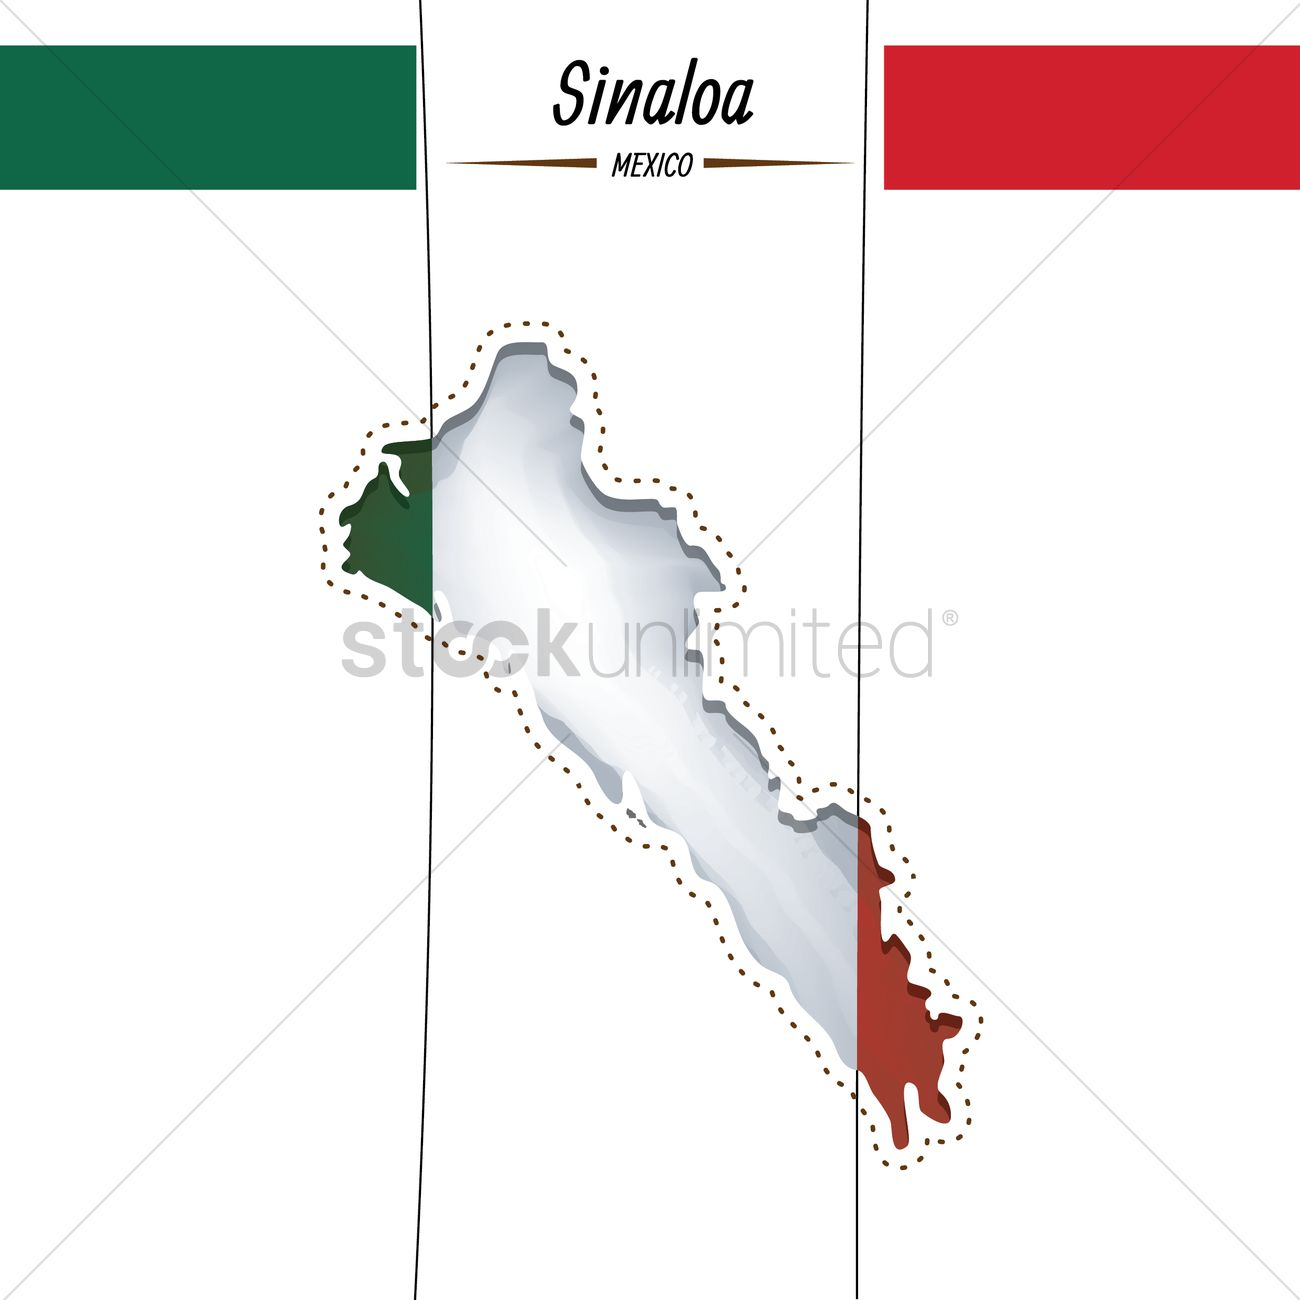 Sinaloa State Map.Sinaloa State Vector Image 2022038 Stockunlimited